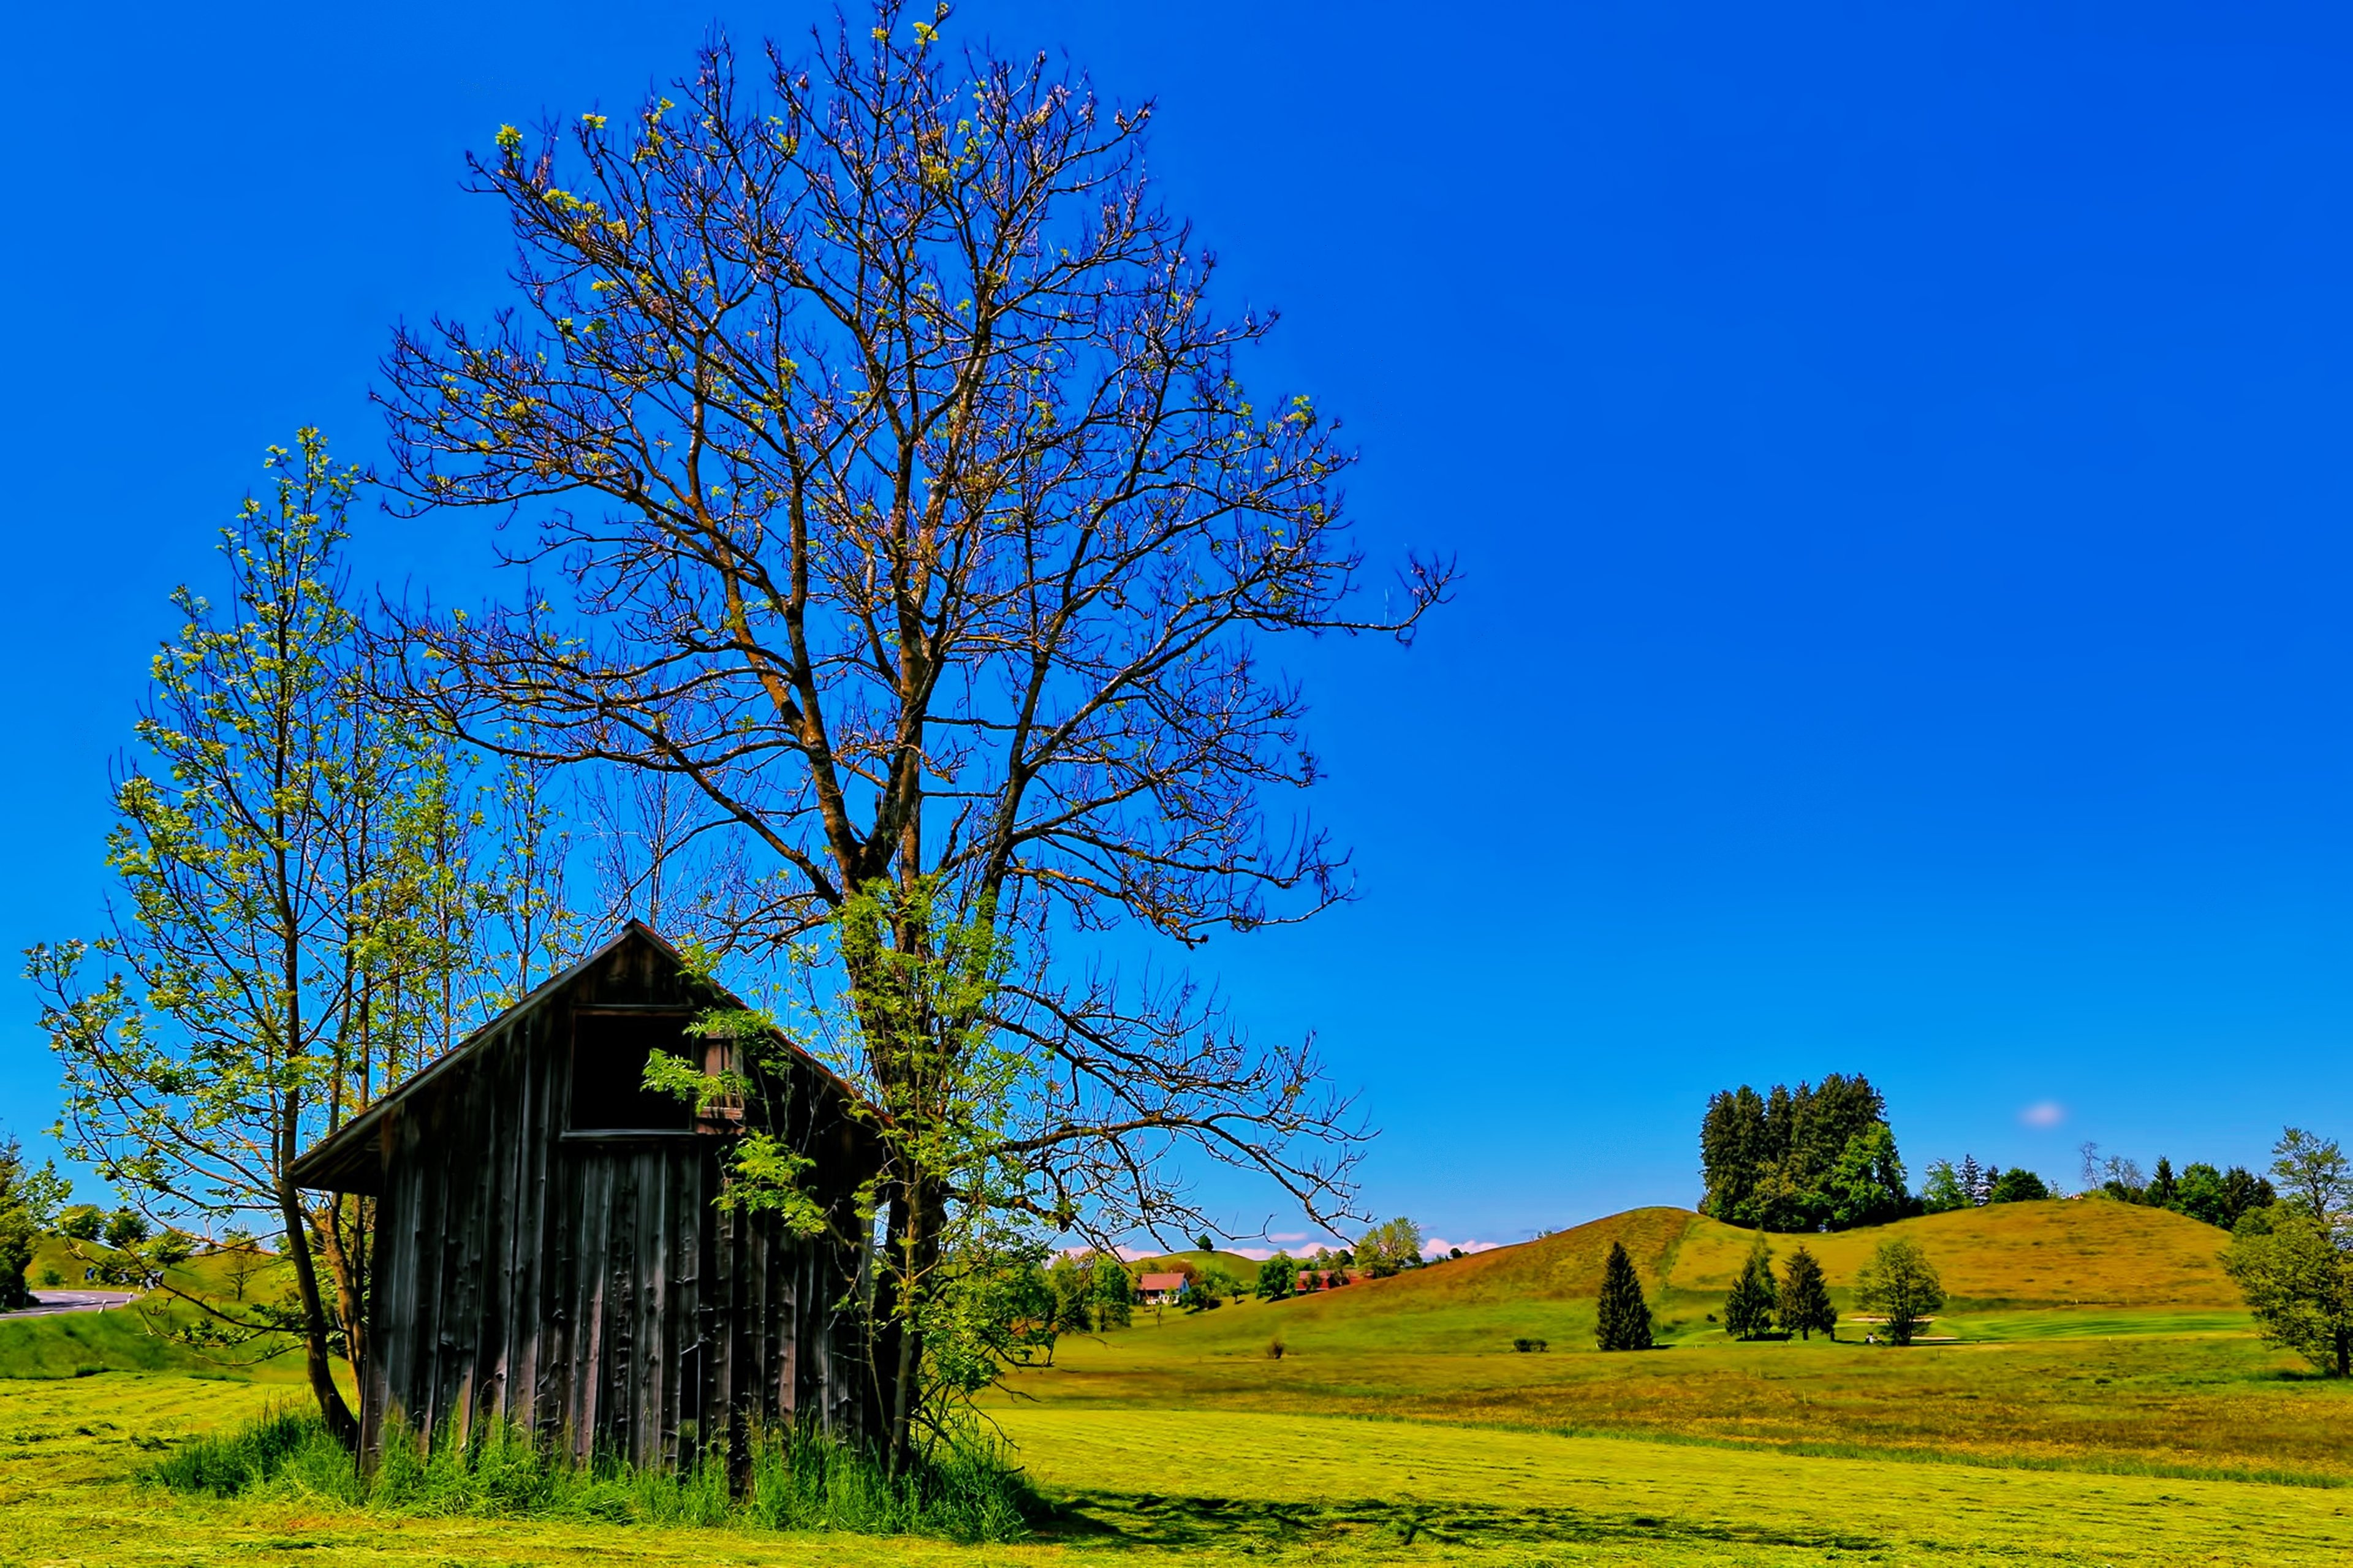 Countryside Trees Spring Sunny Sky Blue House Huts Fields Hills Green Grass Landscapes Nature Earth Wallpaper